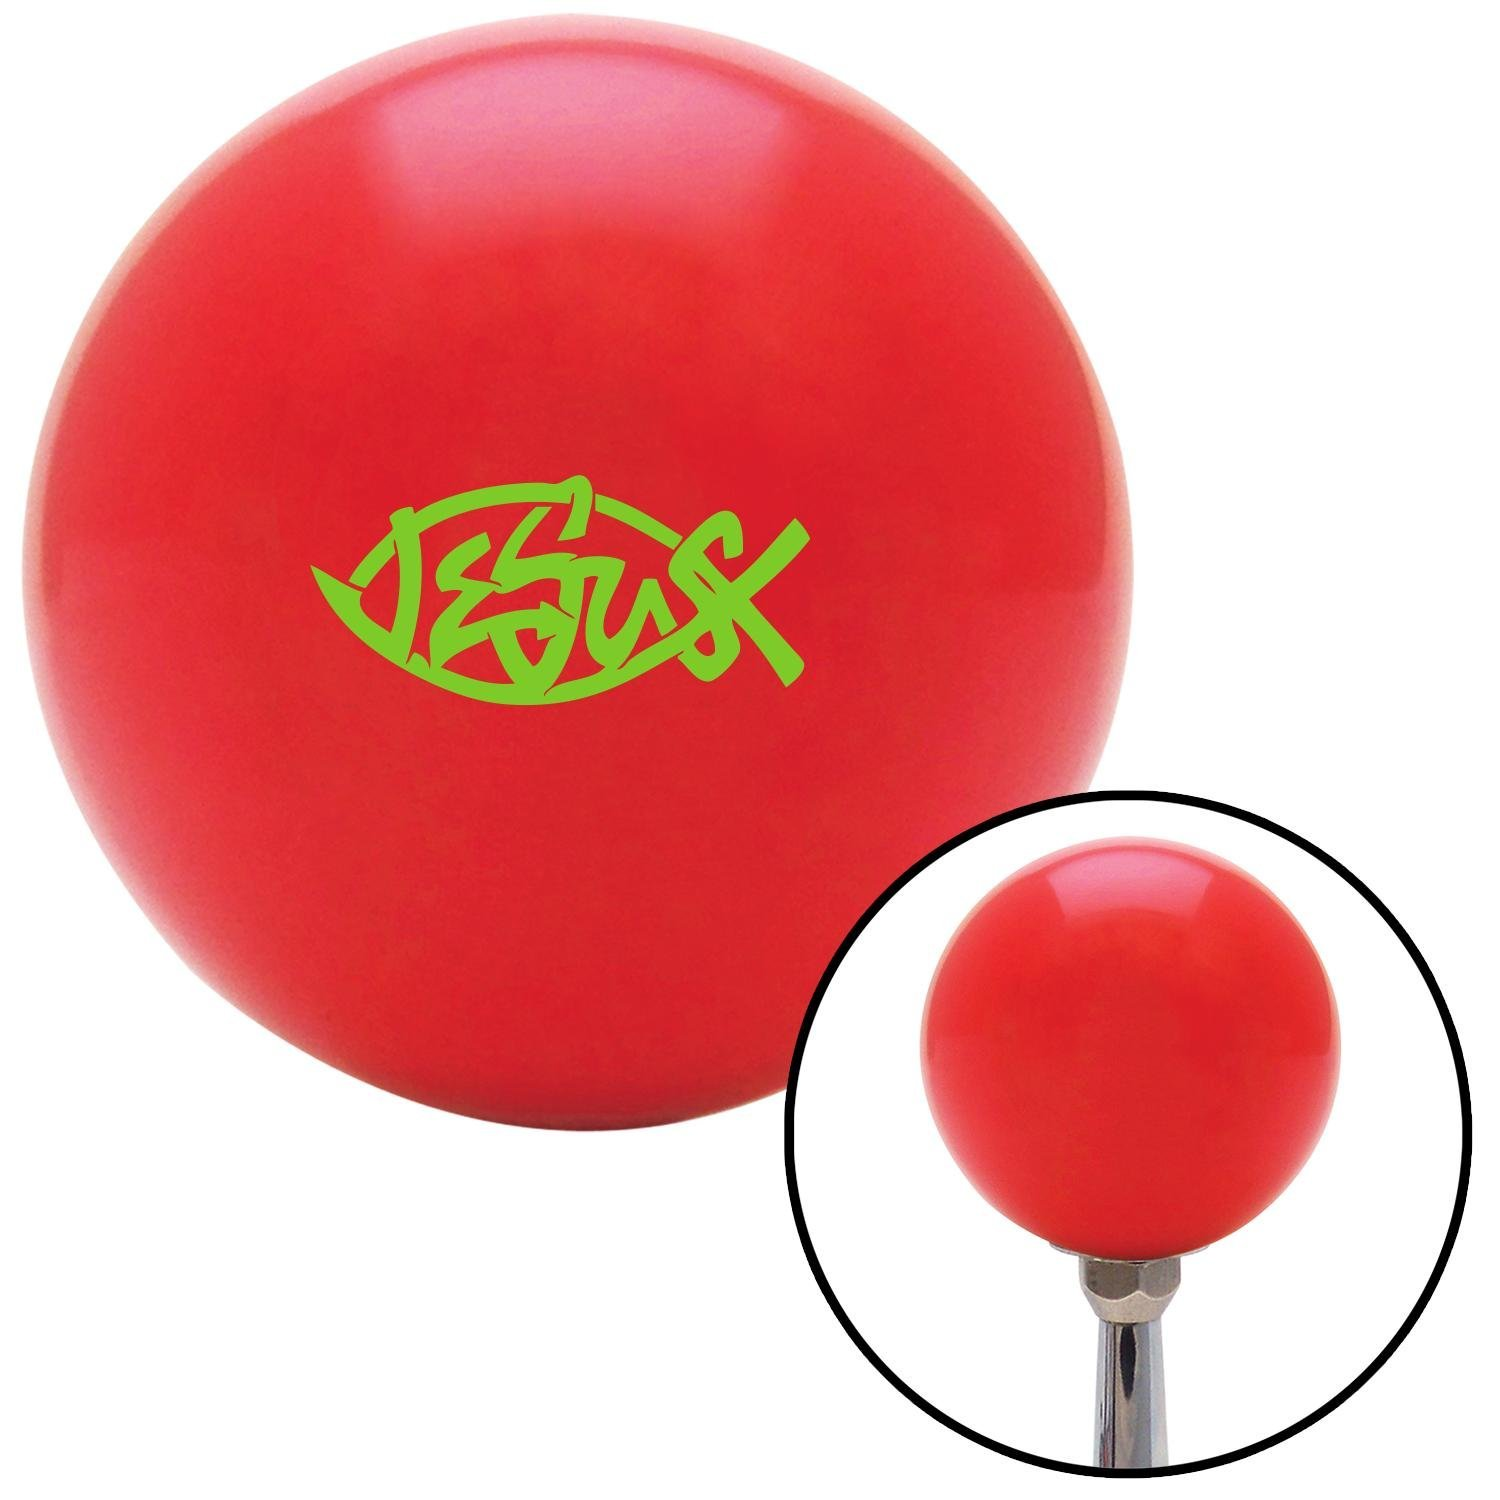 American Shifter 140952 Blue Metal Flake Shift Knob with M16 x 1.5 Insert Pink 2002 Mustang